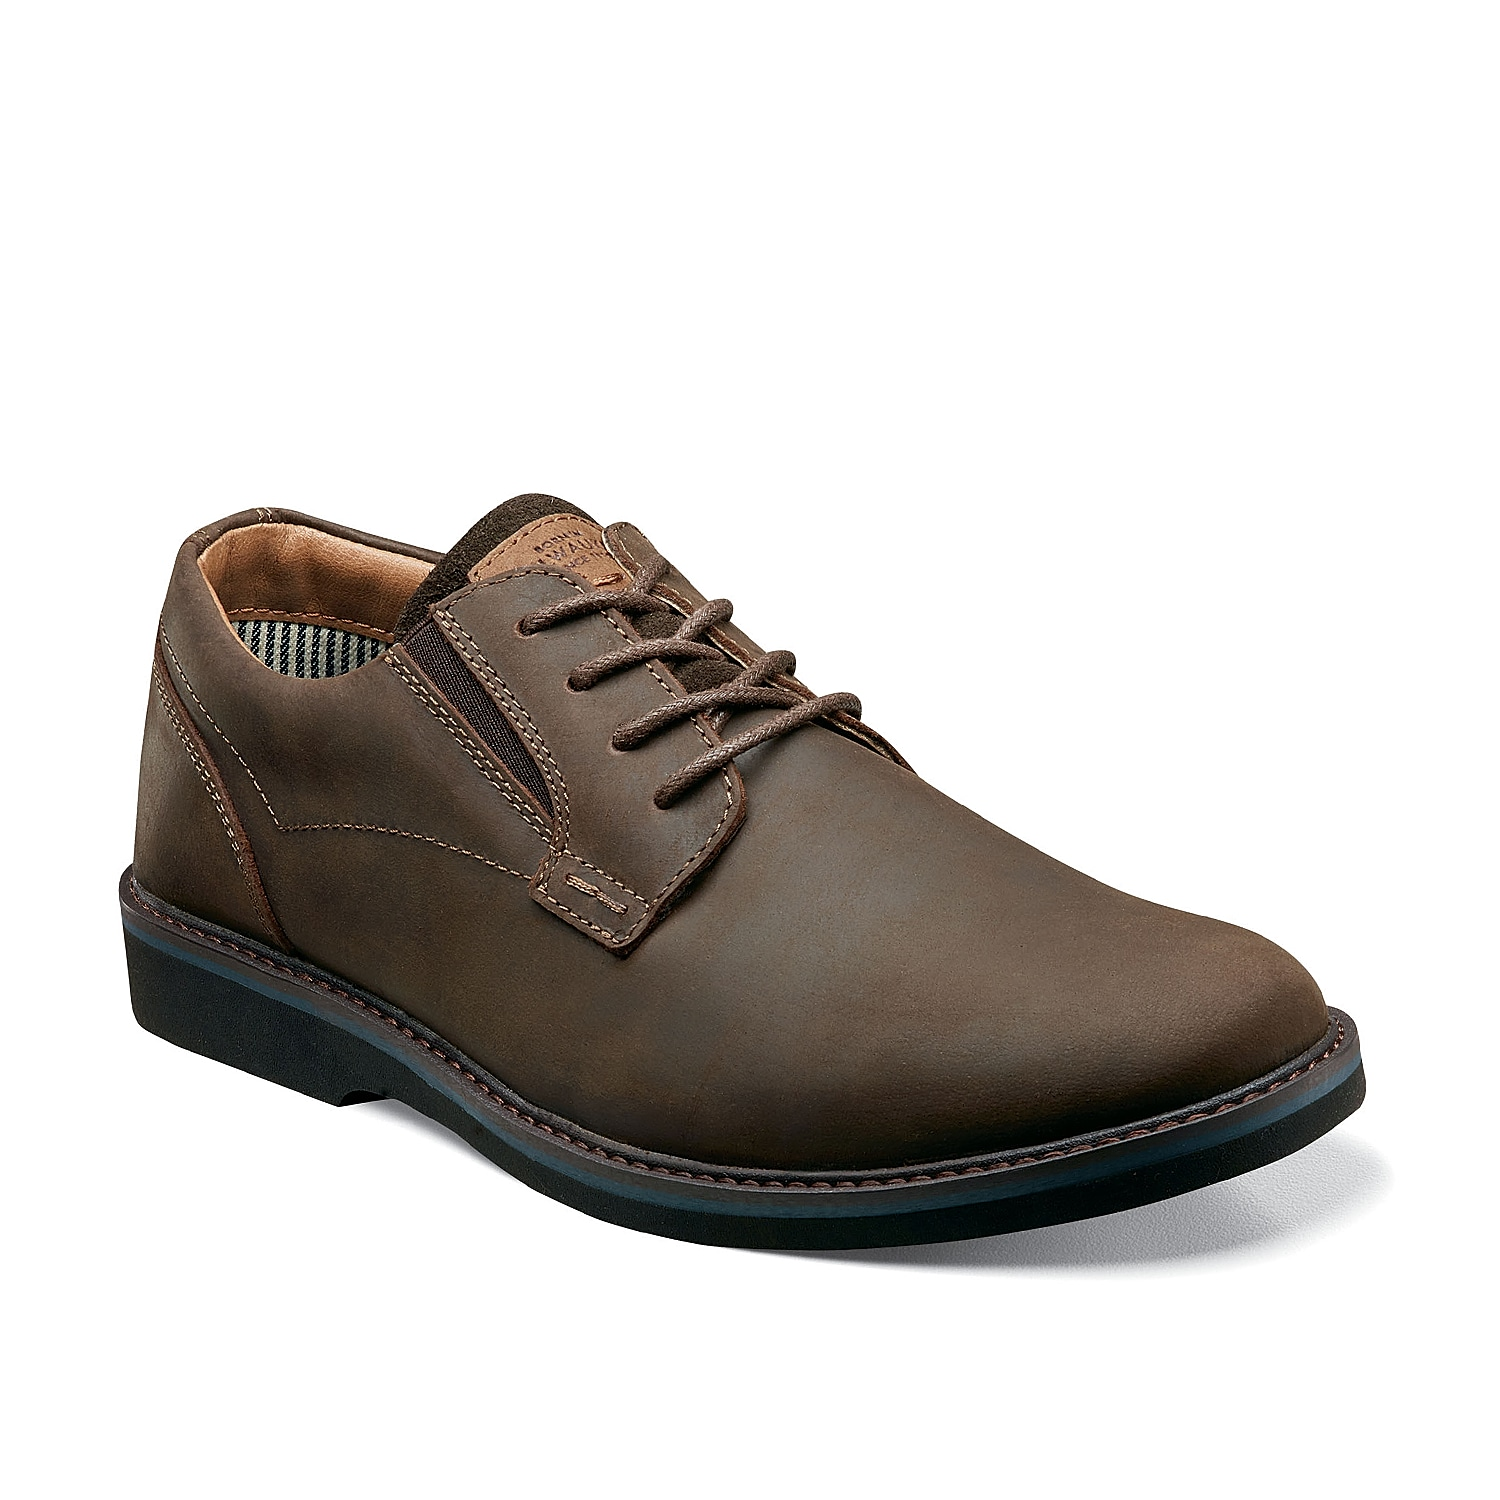 Stay on top of your style with the Barklay oxford from Nunn Bush. These leather dress shoes feature an elastic insert for a custom fit and are finished with a memory foam footbed for daylong comfort and support.